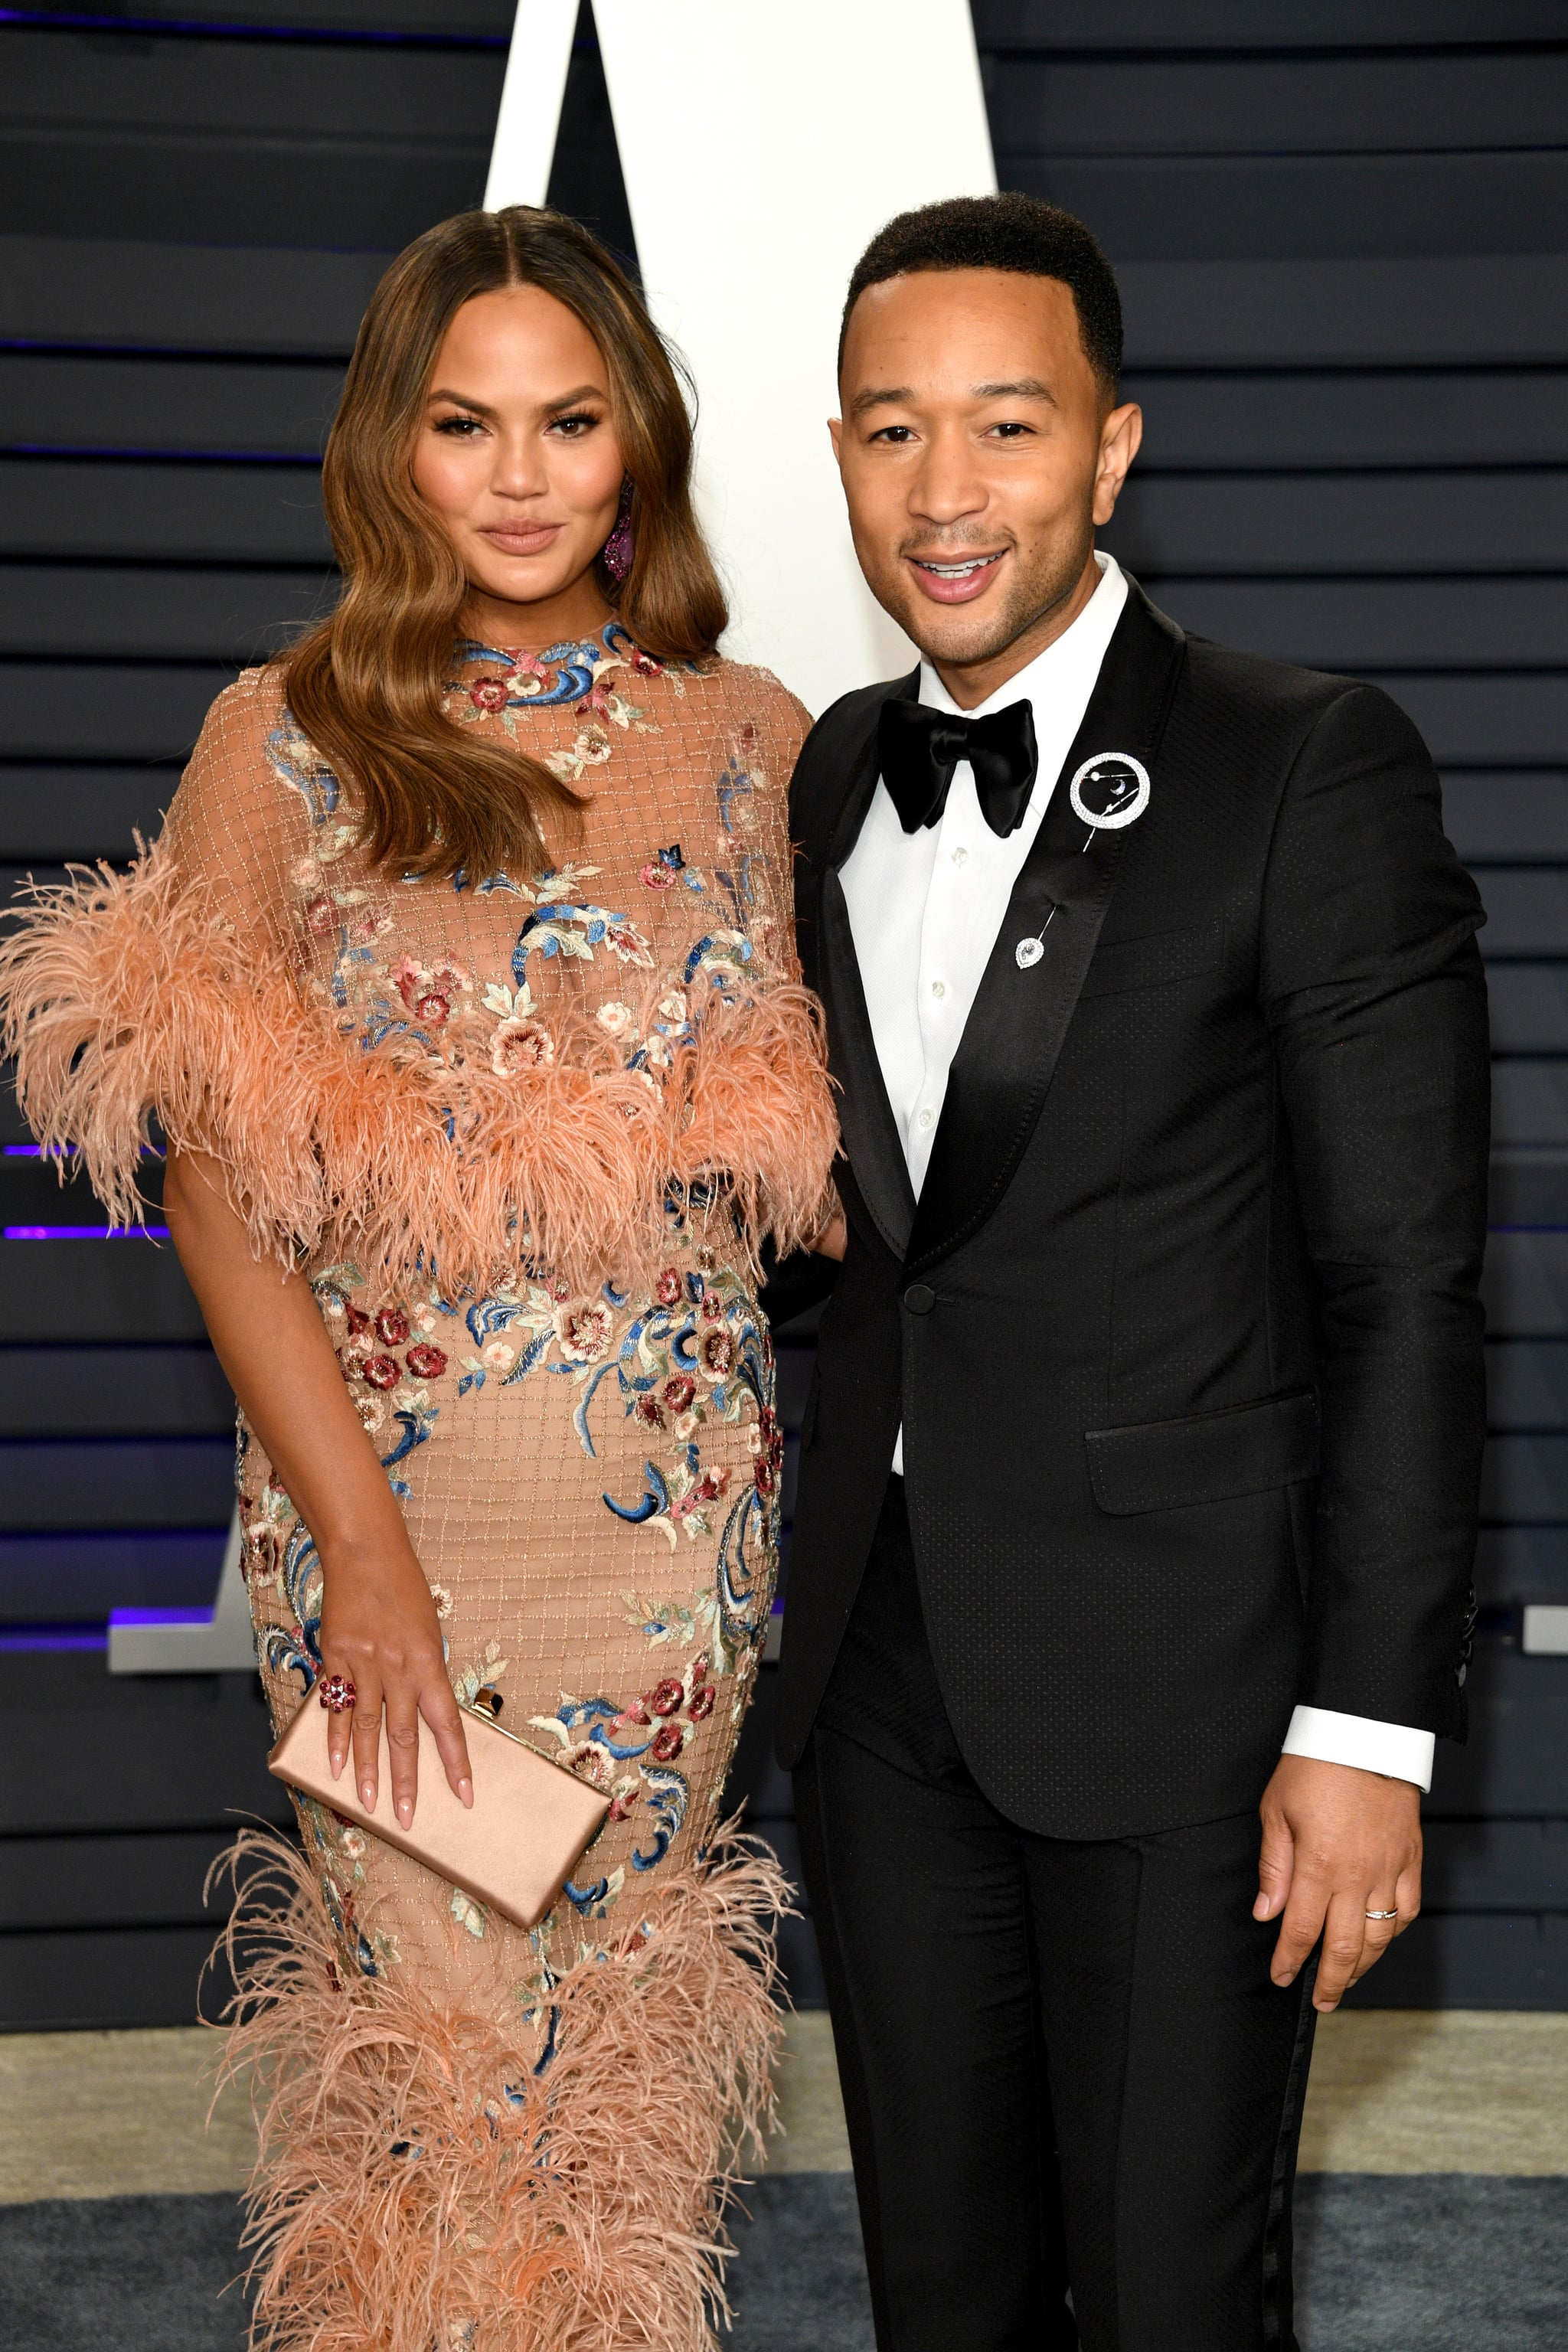 BEVERLY HILLS, CALIFORNIA - FEBRUARY 24: Christine Teigen  and John Legend attend 2019 Vanity Fair Oscar Party Hosted By Radhika Jones   at Wallis Annenberg Center for the Performing Arts on February 24, 2019 in Beverly Hills, California. (Photo by Daniele Venturelli/WireImage)